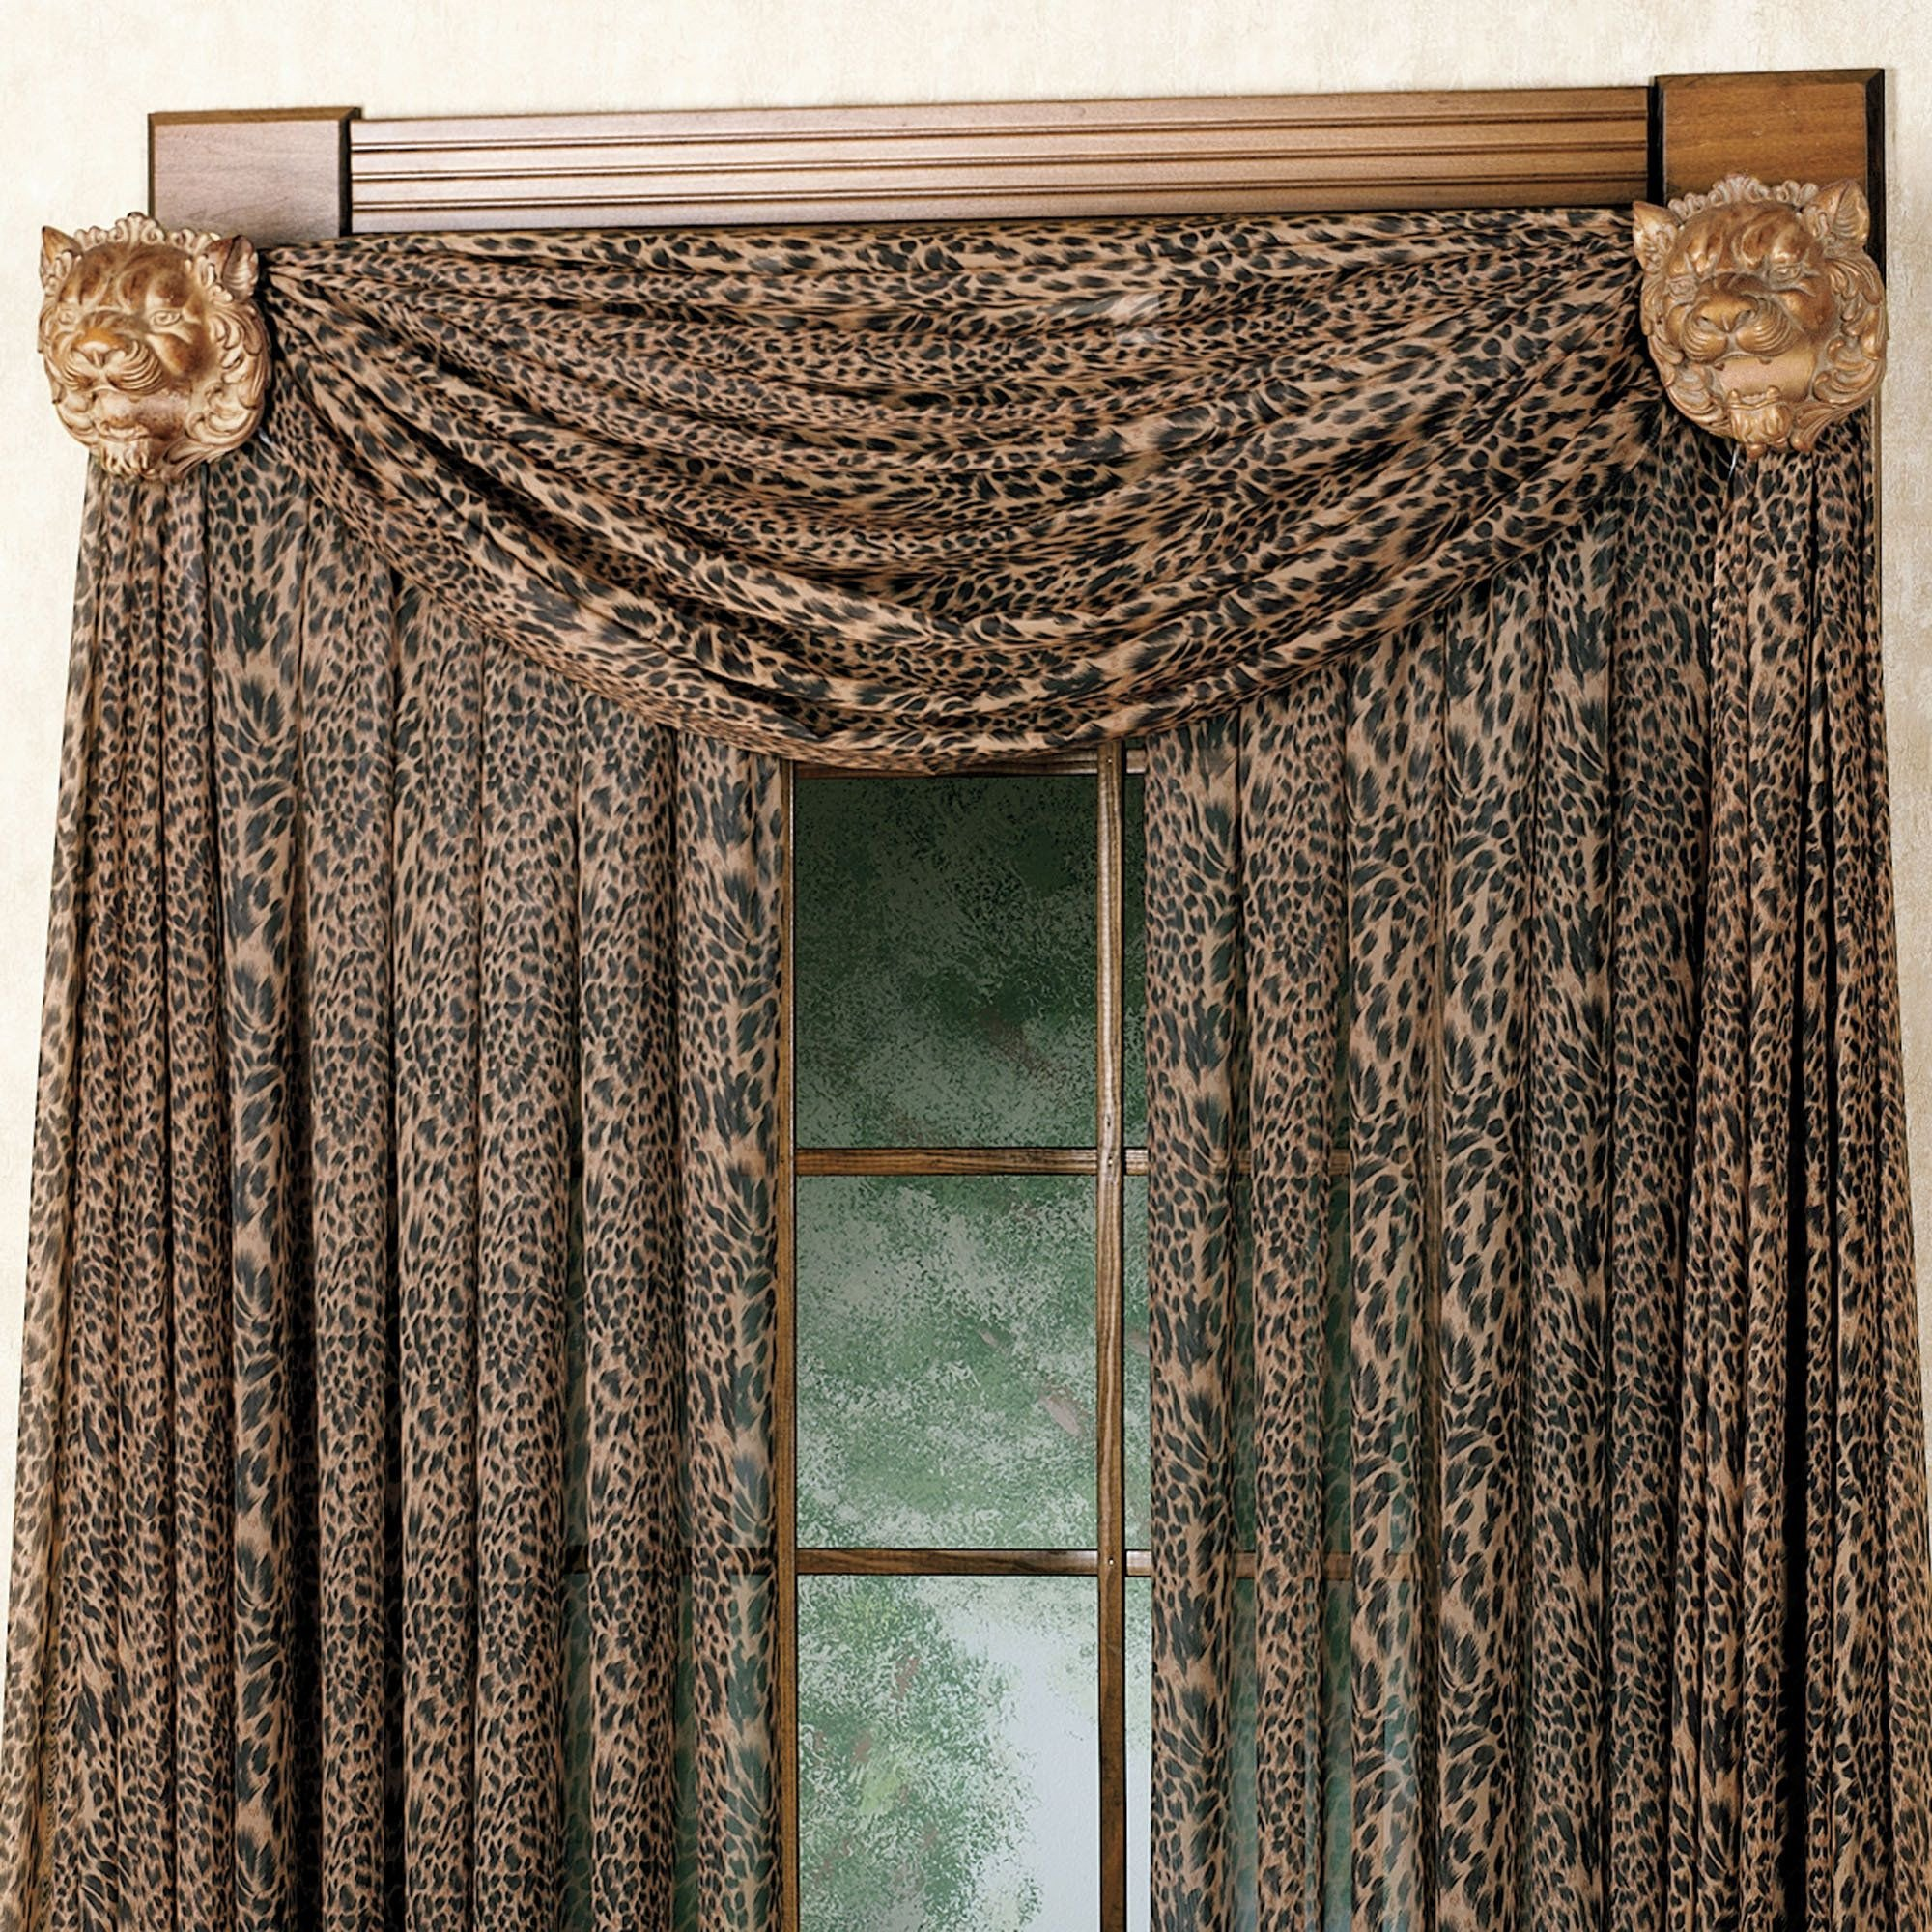 Beautiful Curtains for Bedroom Luxury Leopard Curtains and Valance Want them for My Living Room